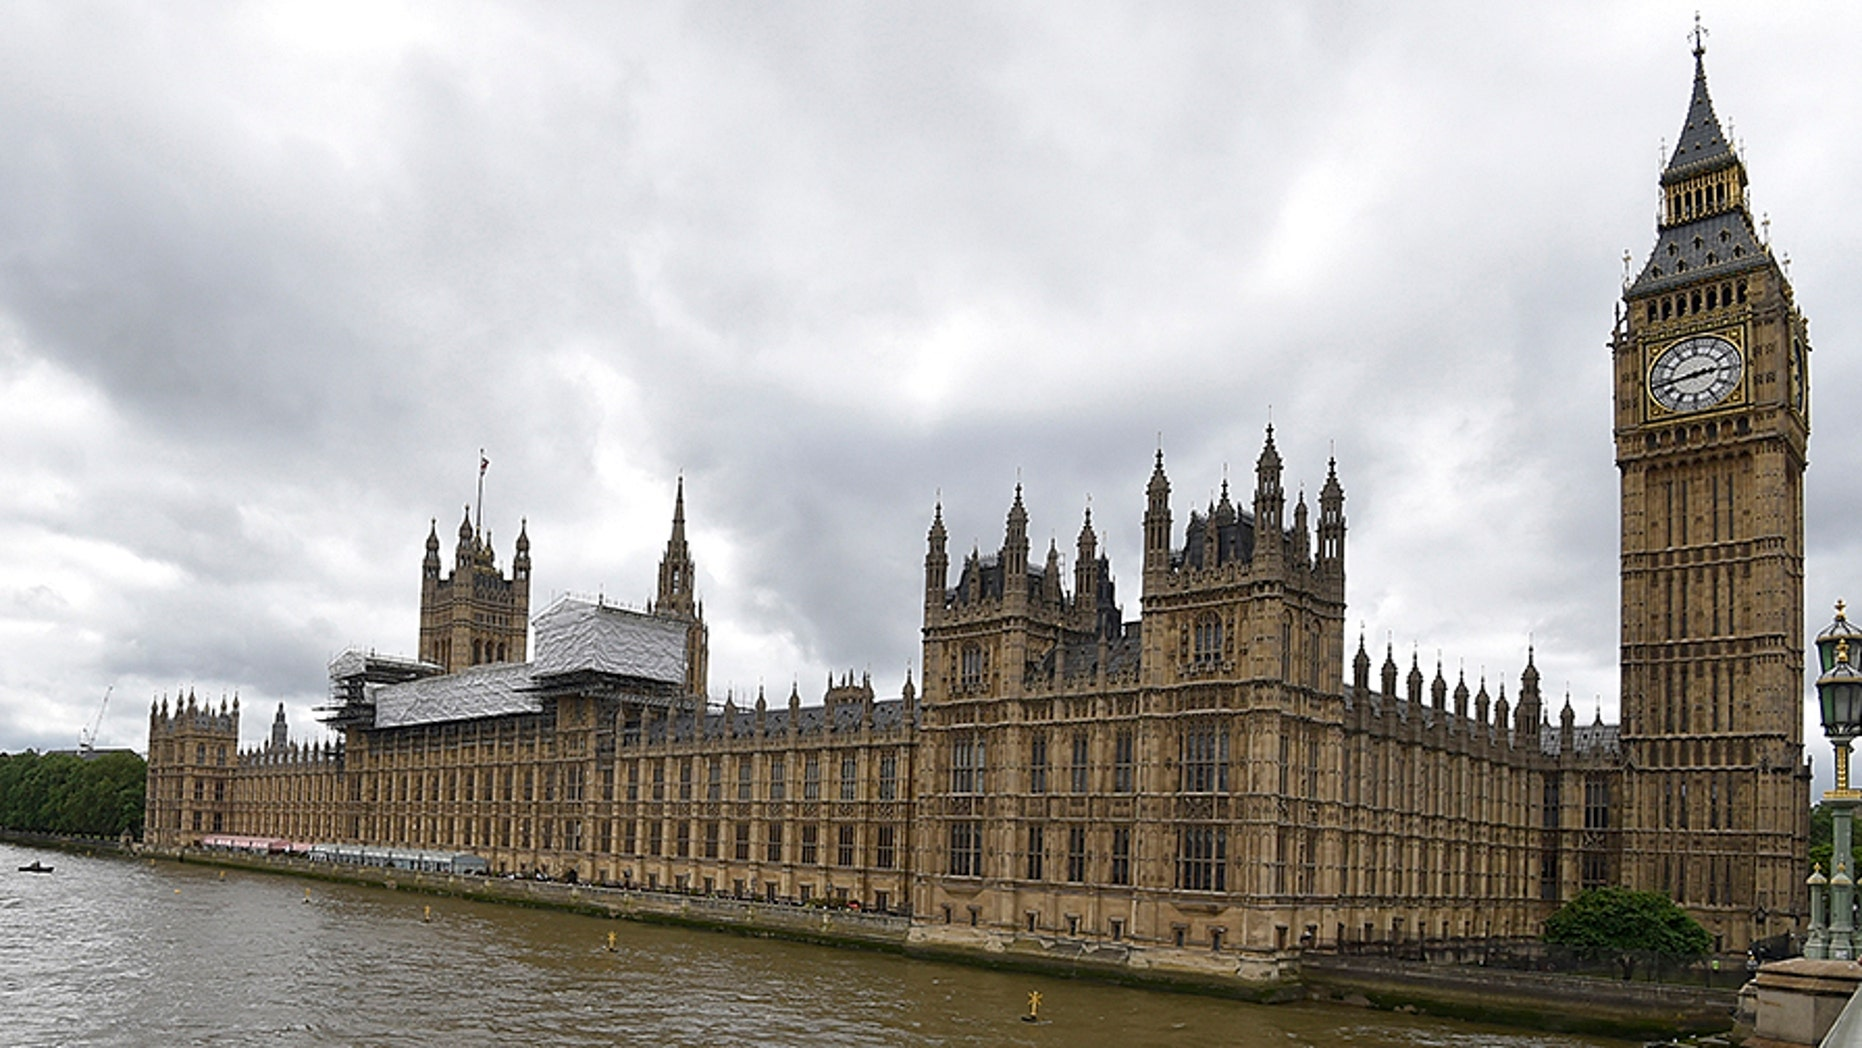 """A letter containing """"white powder"""" was sent to the Palace of Westminster on Tuesday, police said."""